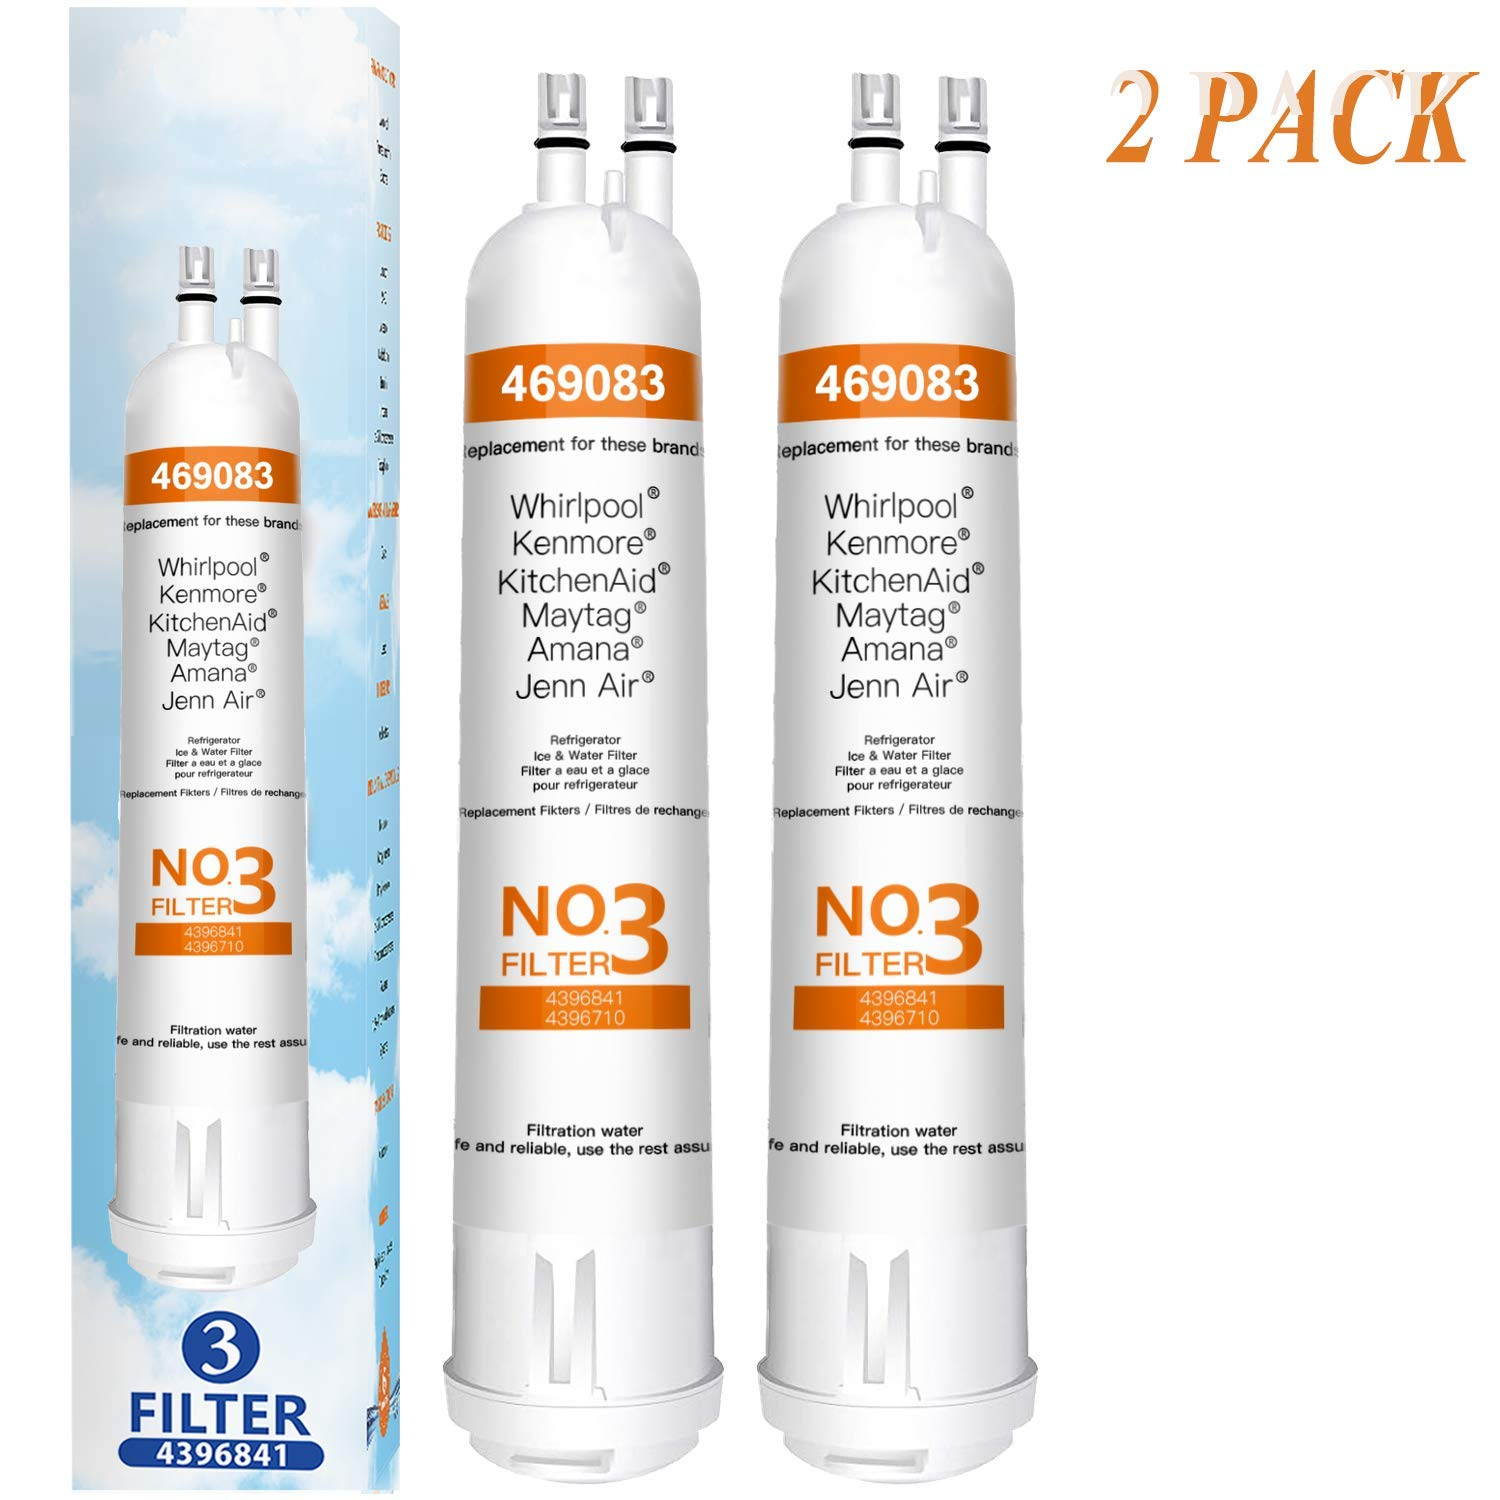 1 Pack 9083 Water Filter Replacement wf2 469083 469030 9030 Compatible with Kenmore 9083 Water Filter 3 for 469030 9030 469083 9083 Filter 3